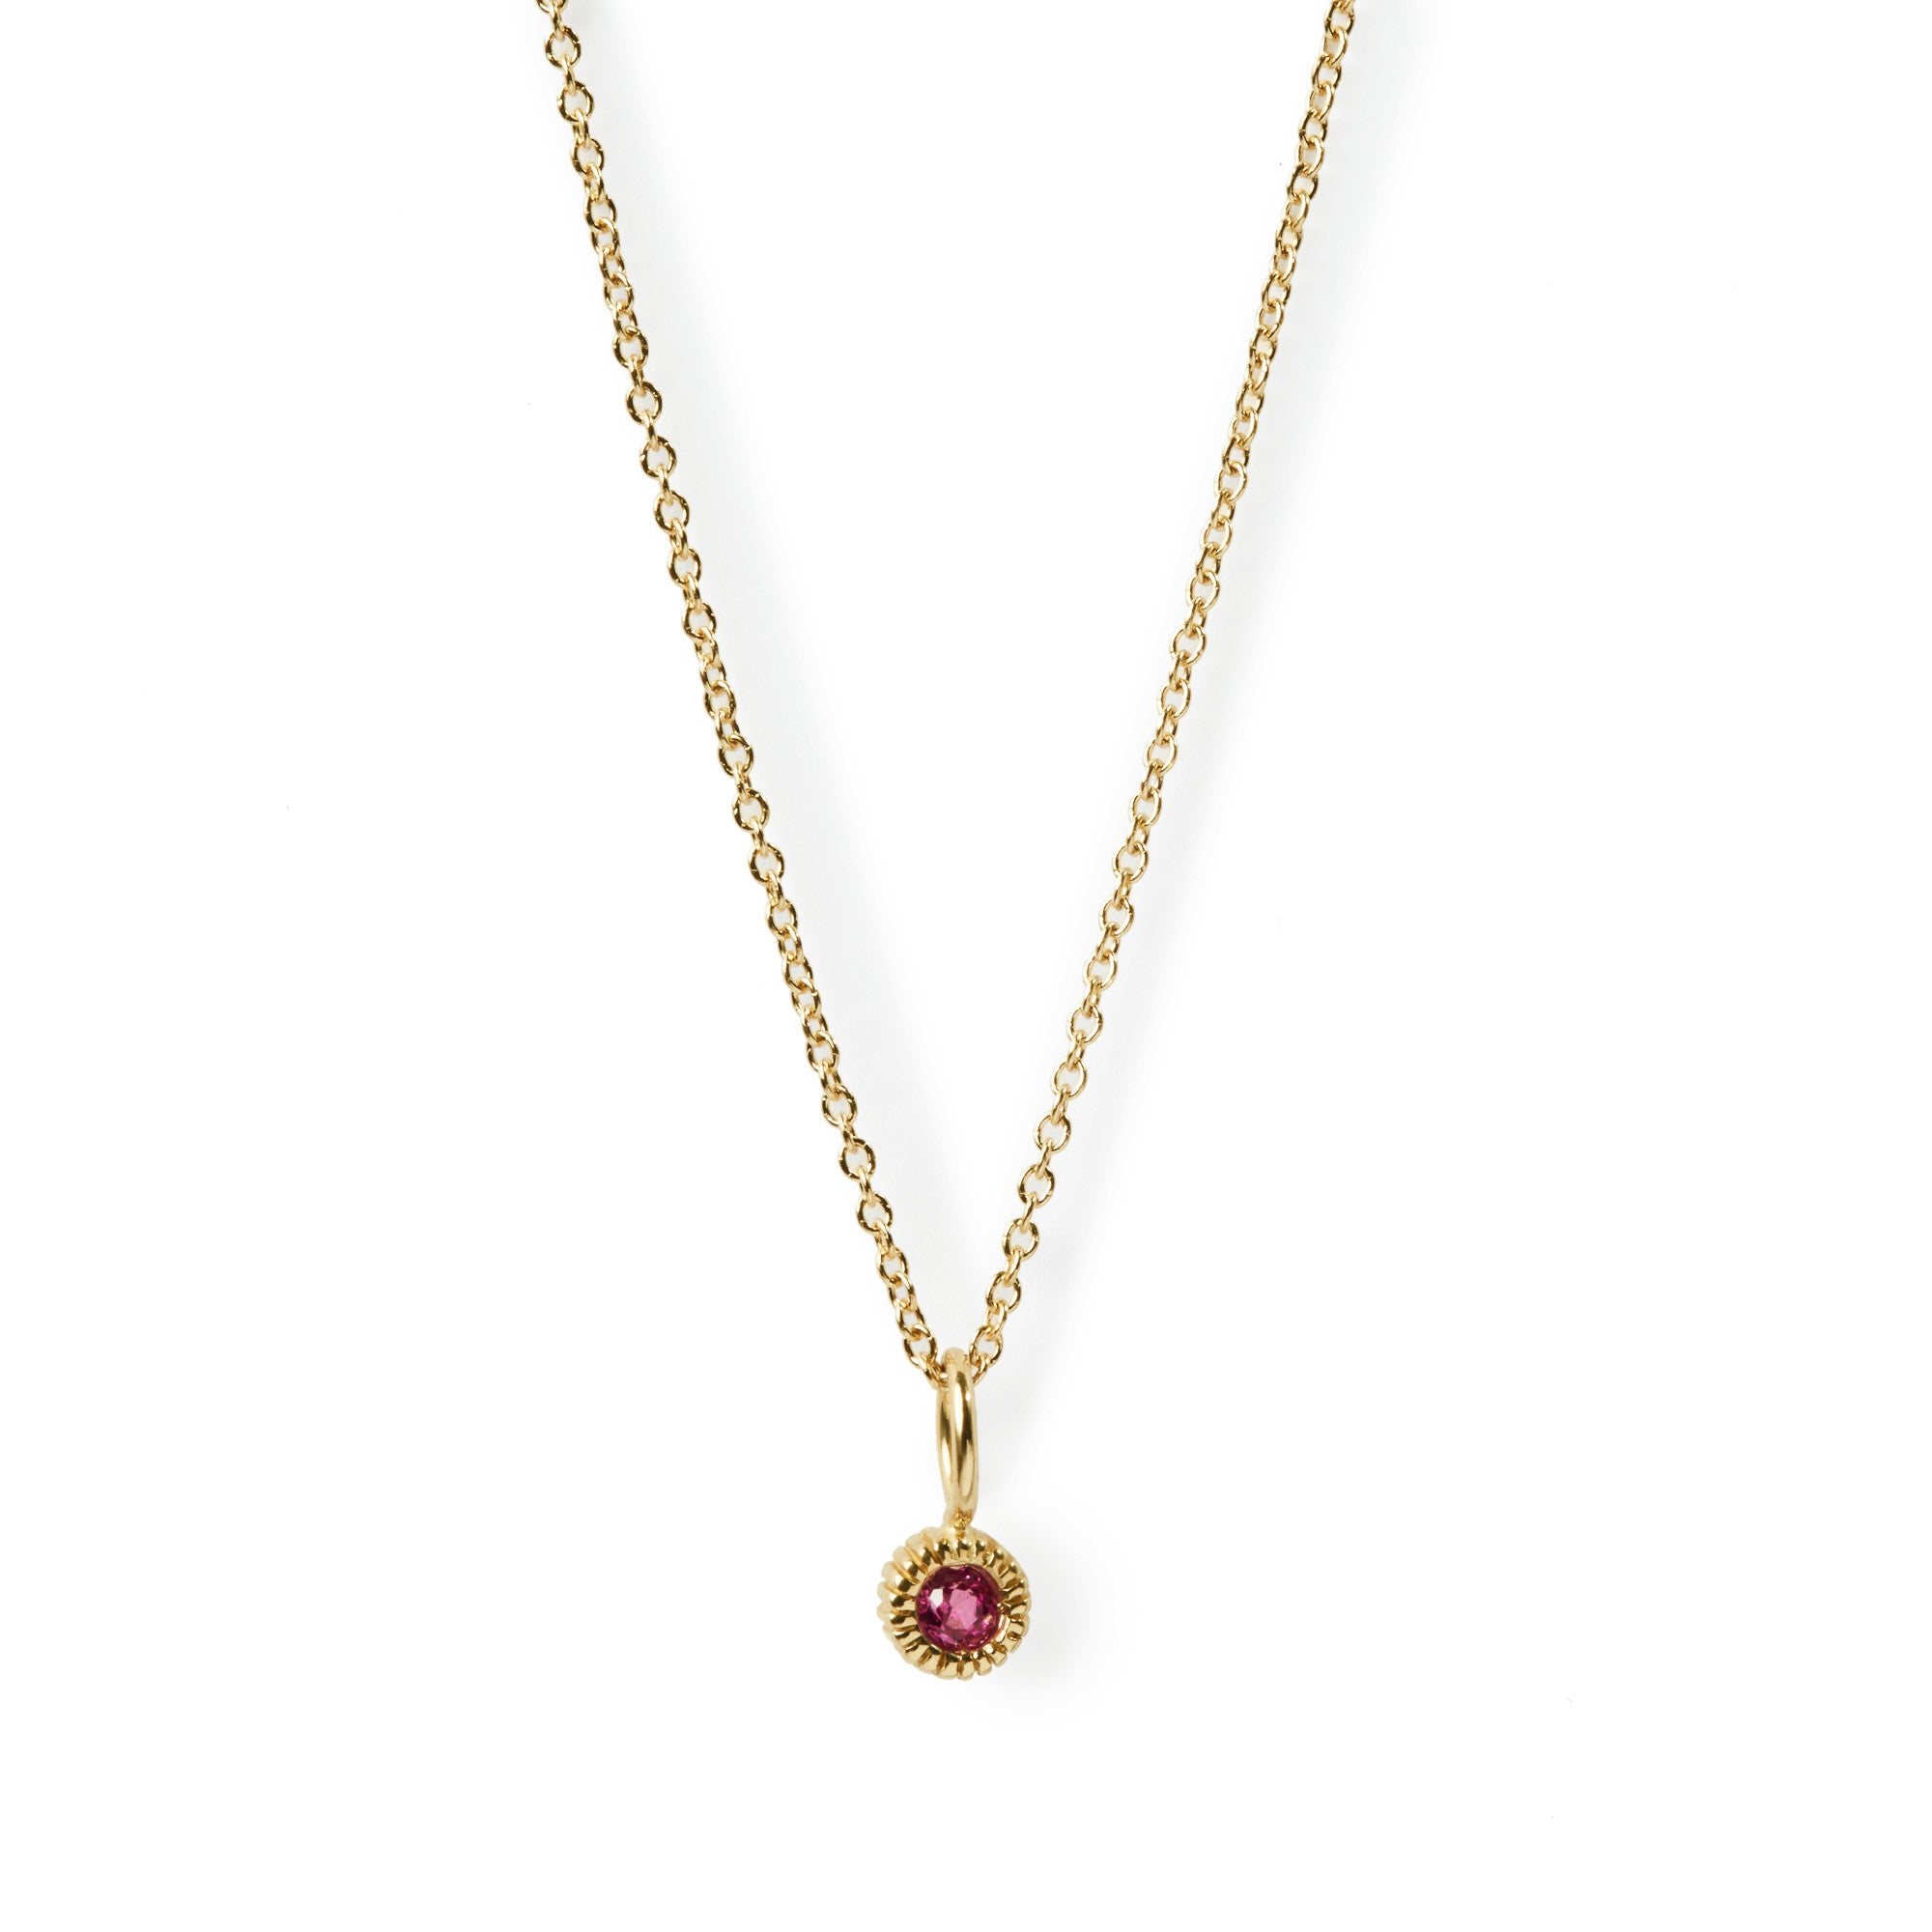 dublin products gold pink necklace tourmaline diamond fine jewellers bespoke jewellery white campbell pendant